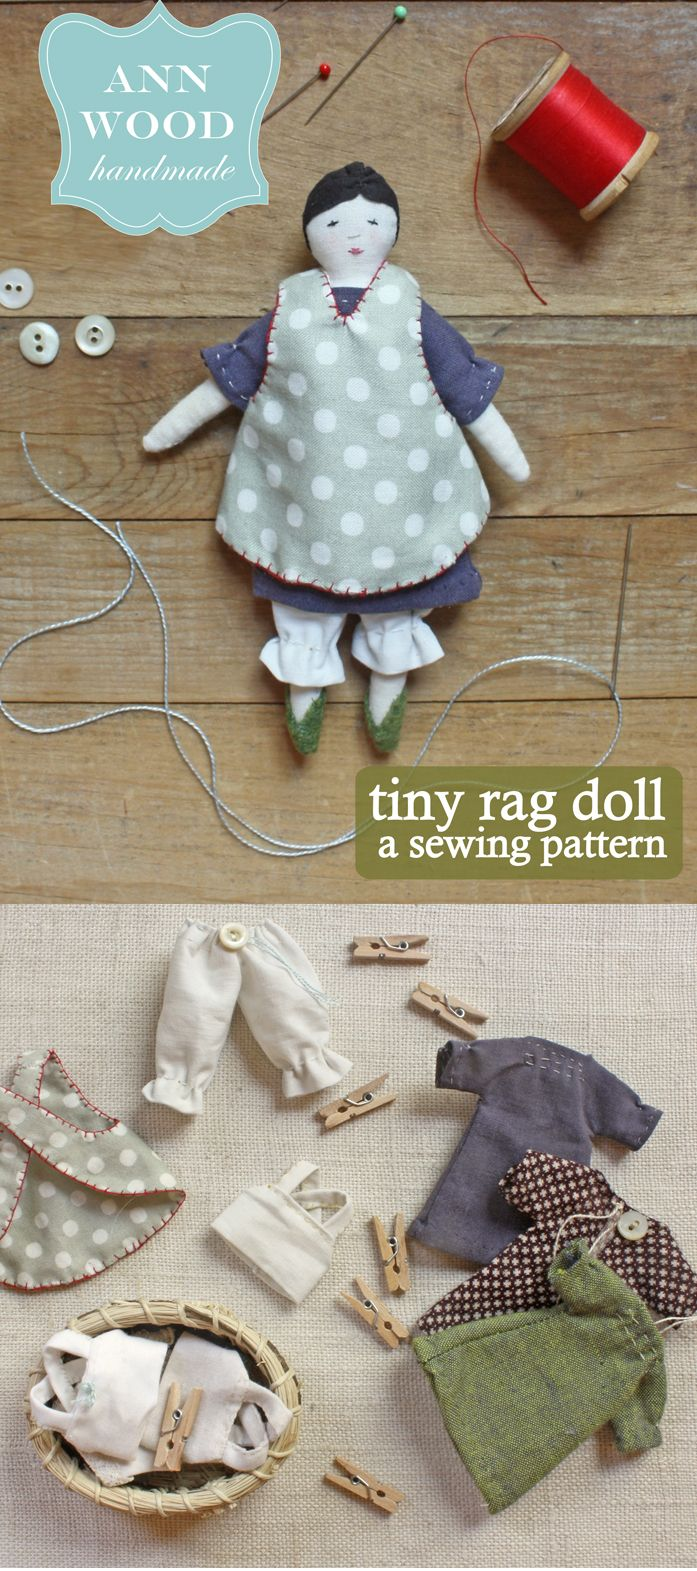 tiny rag doll pattern http://puppet-master.com - THE VENTRILOQUIST ...